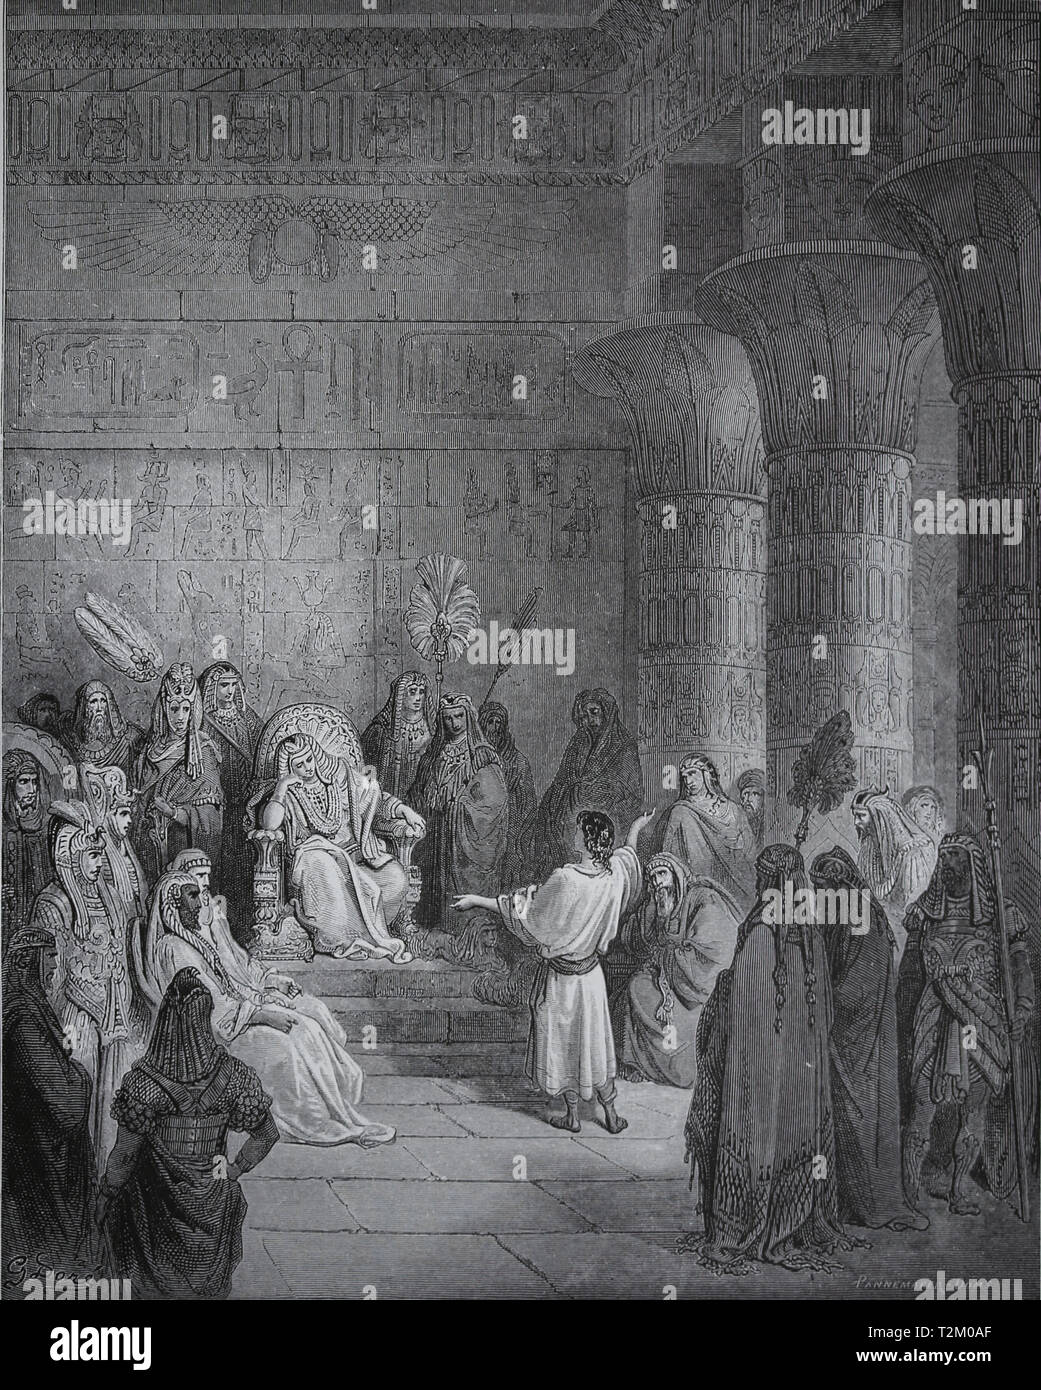 Joseph interprets Pharaoh's dream. The Bible. Book of Genesis. Engraving by Gustave Dore, 1866. - Stock Image